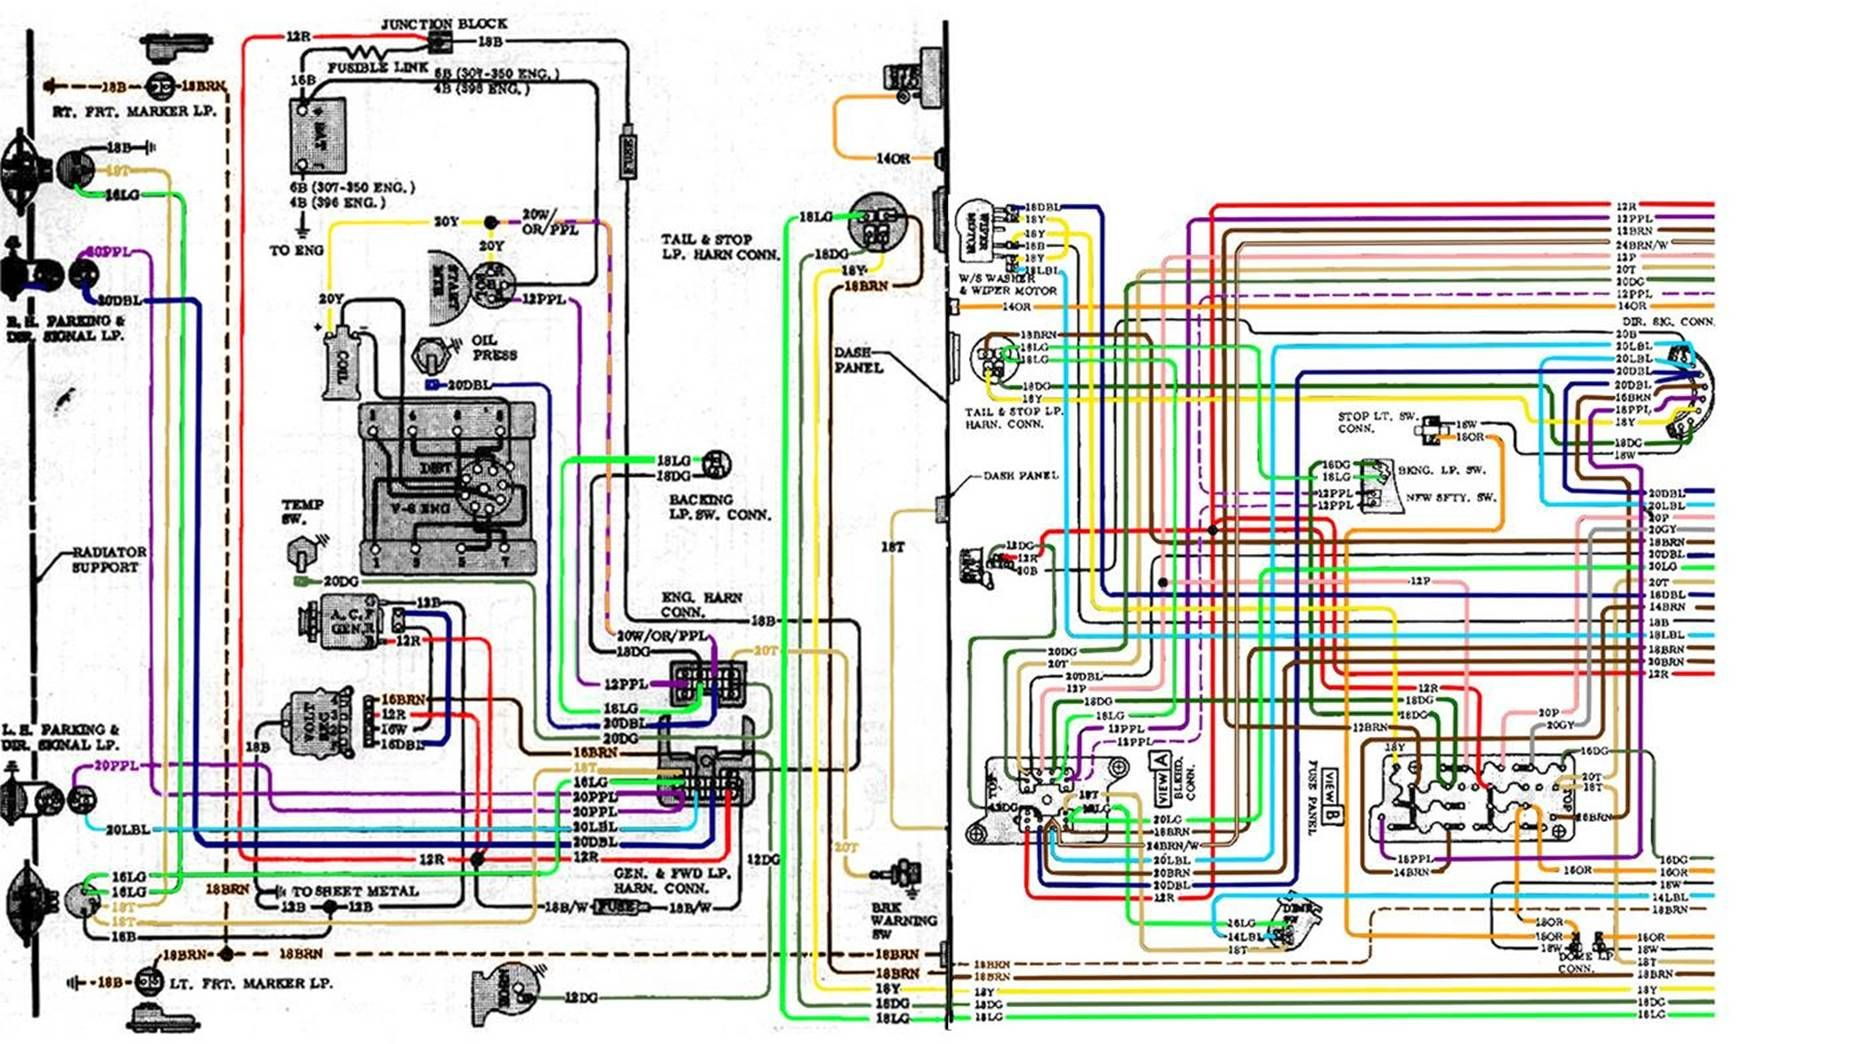 Swell 67 Shelby Wiring Diagram Wiring Diagrams For Your Car Or Truck Wiring Cloud Intapioscosaoduqqnet